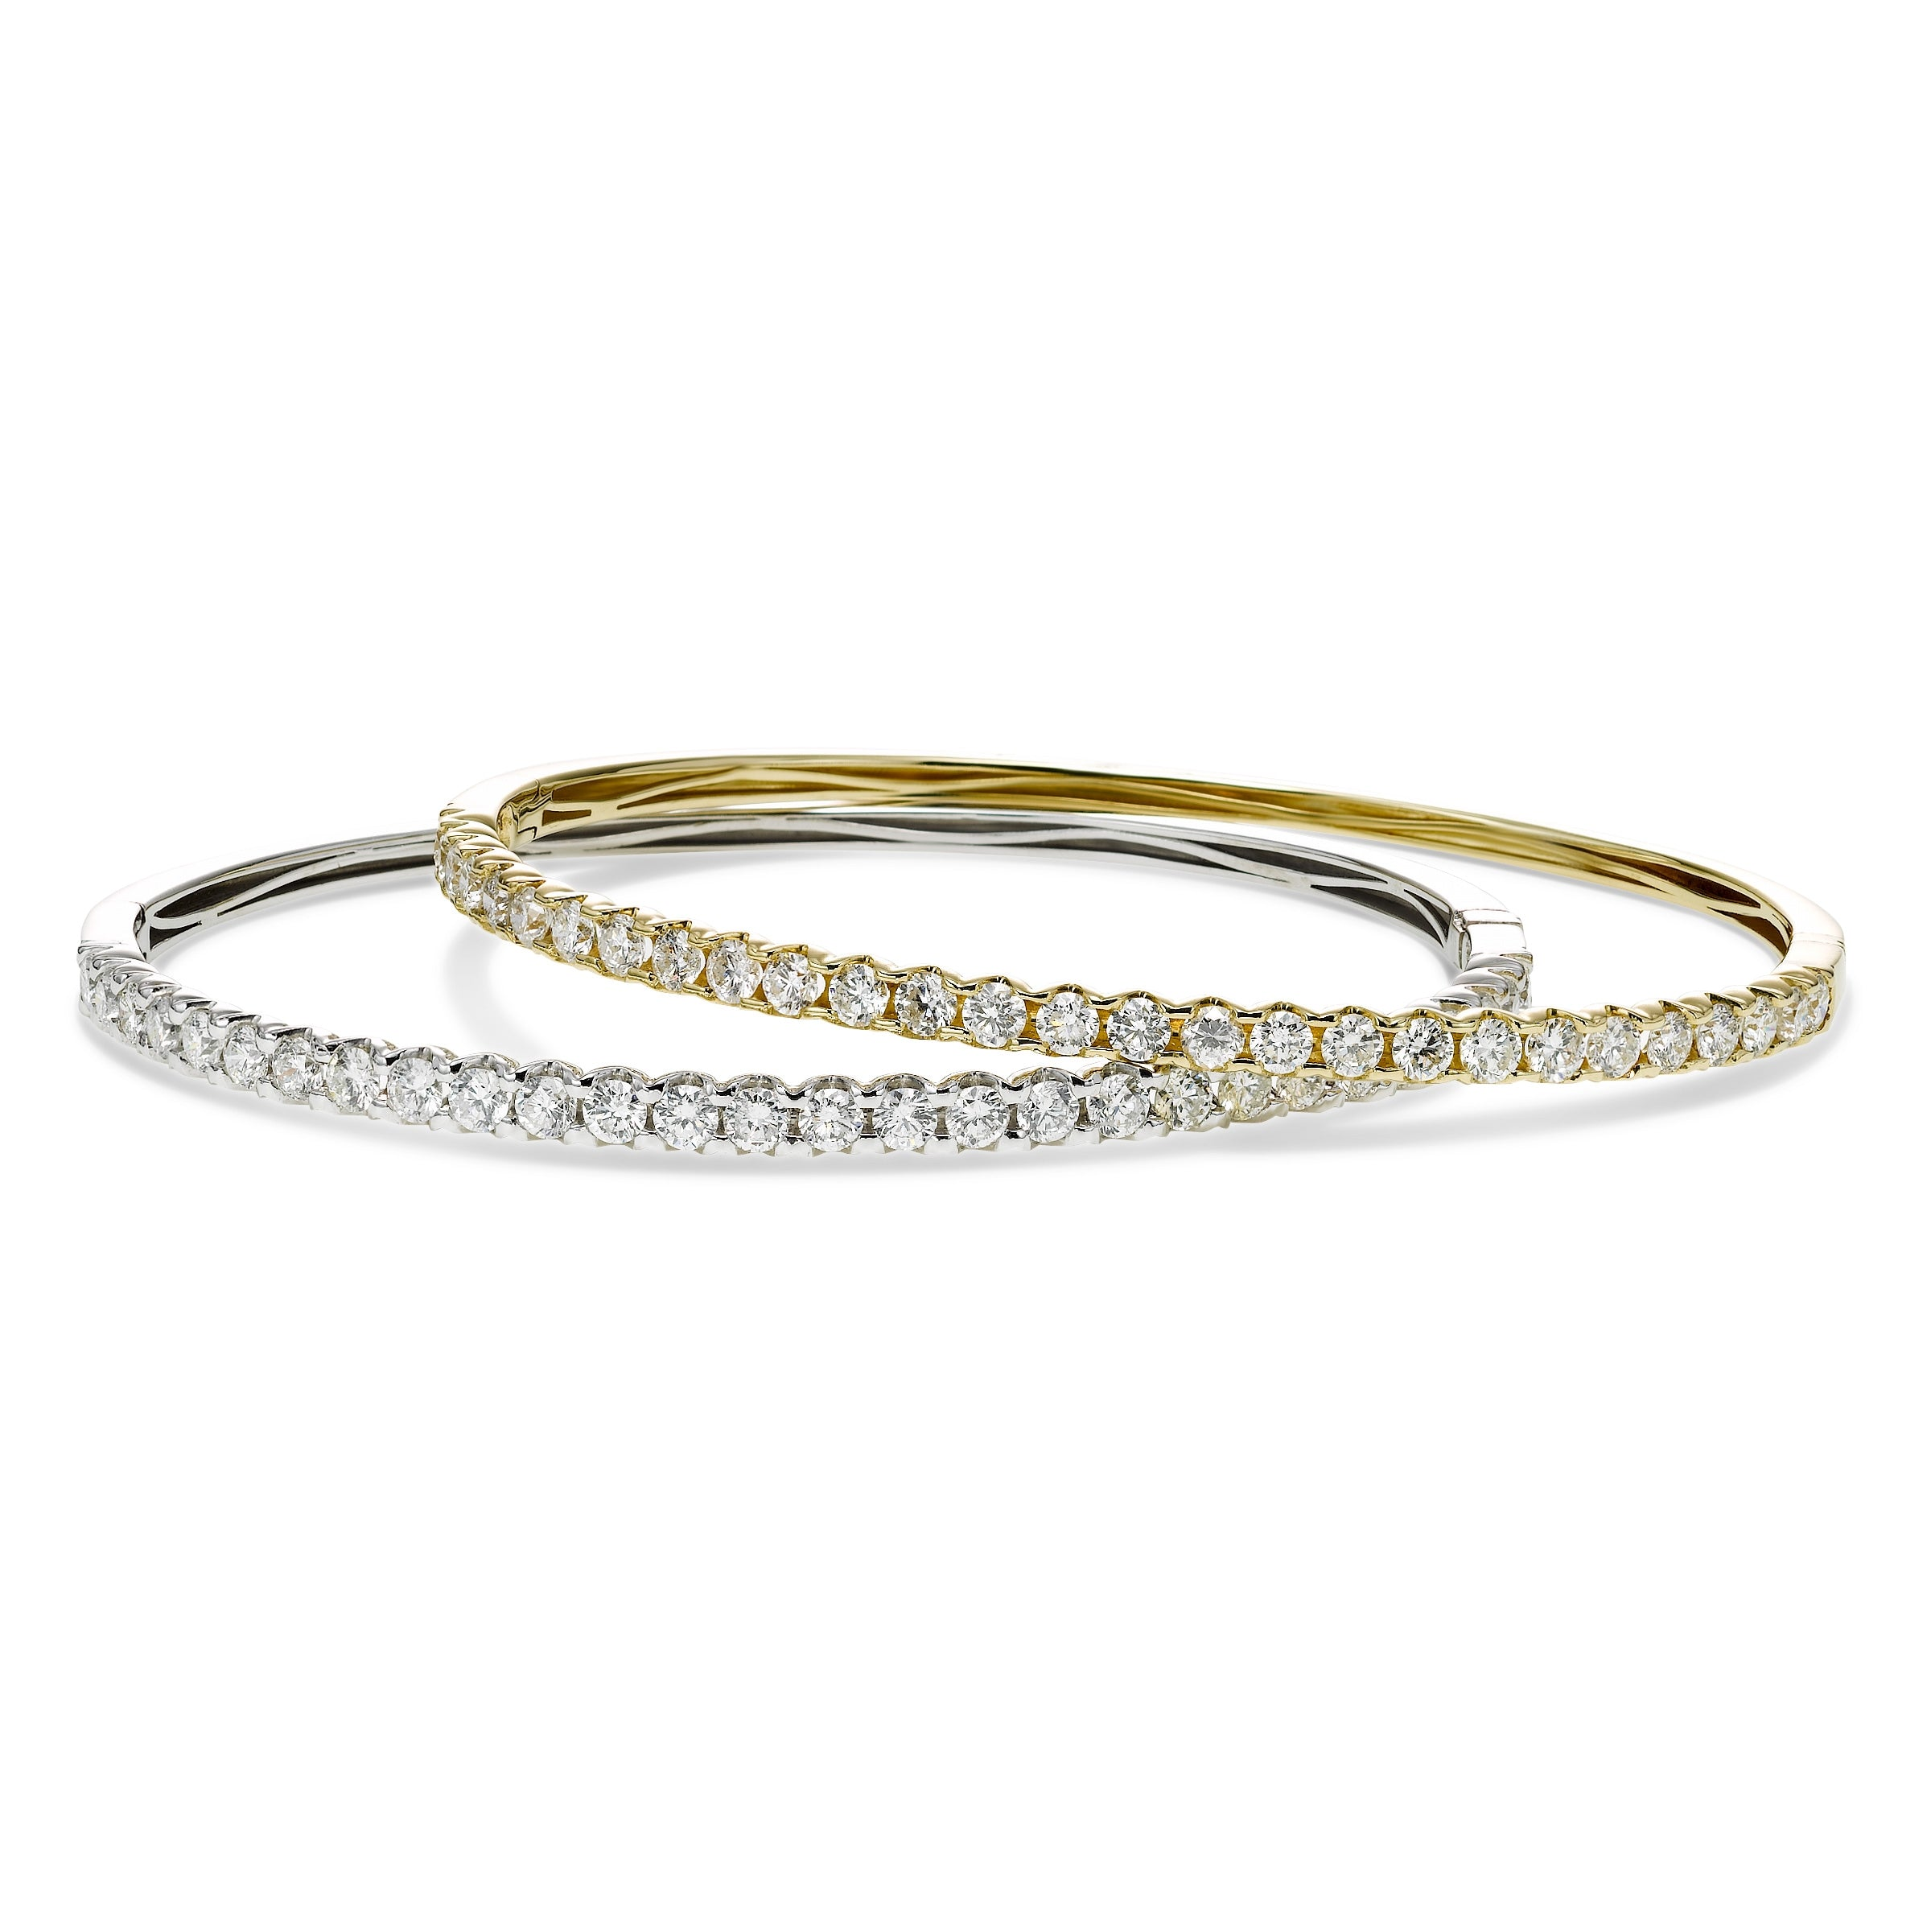 Diamond Bangle Bracelet, 2.50 Carats, 14K Yellow Gold